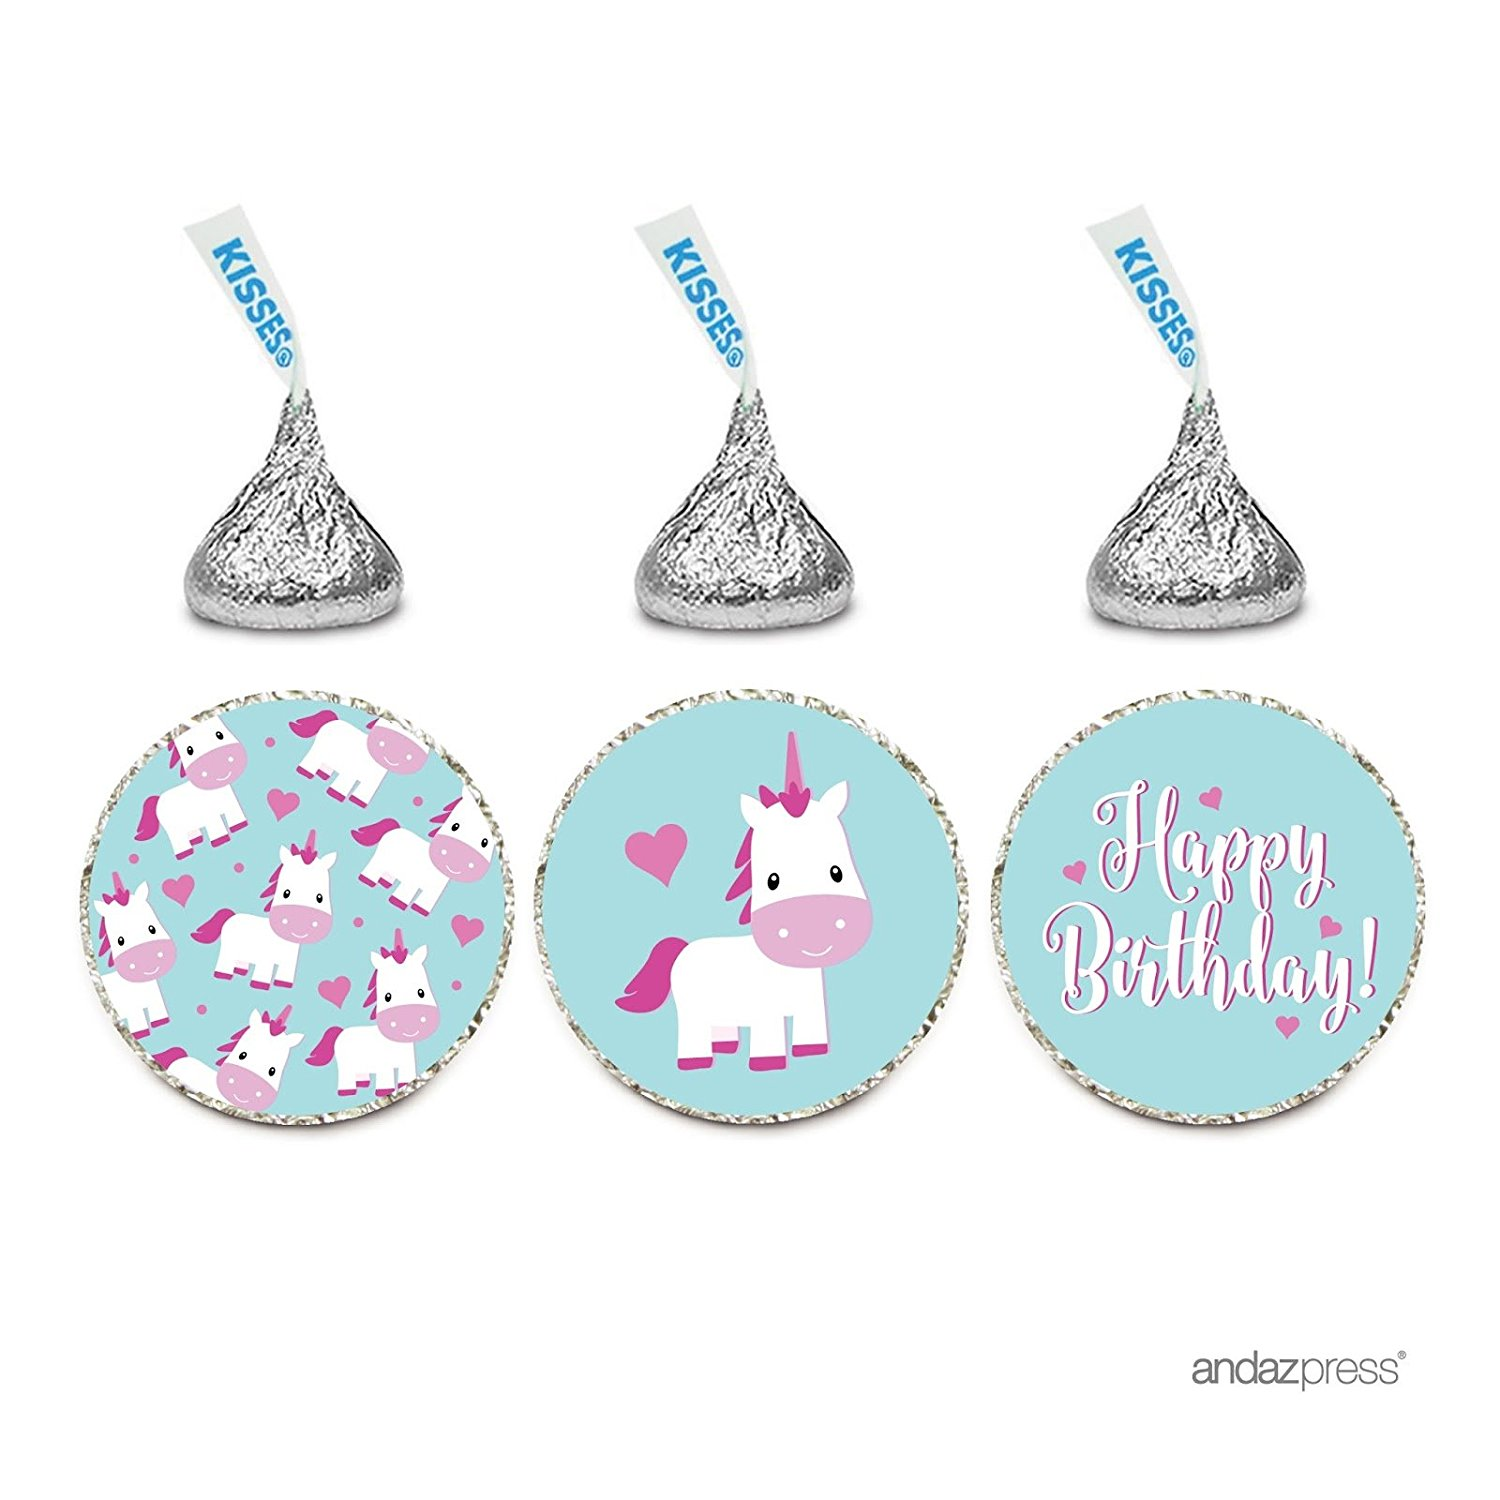 Birthday Chocolate Drop Labels Trio, Fits Hershey's Kisses Party Favors, Unicorn Happy Birthday, 216-Pack